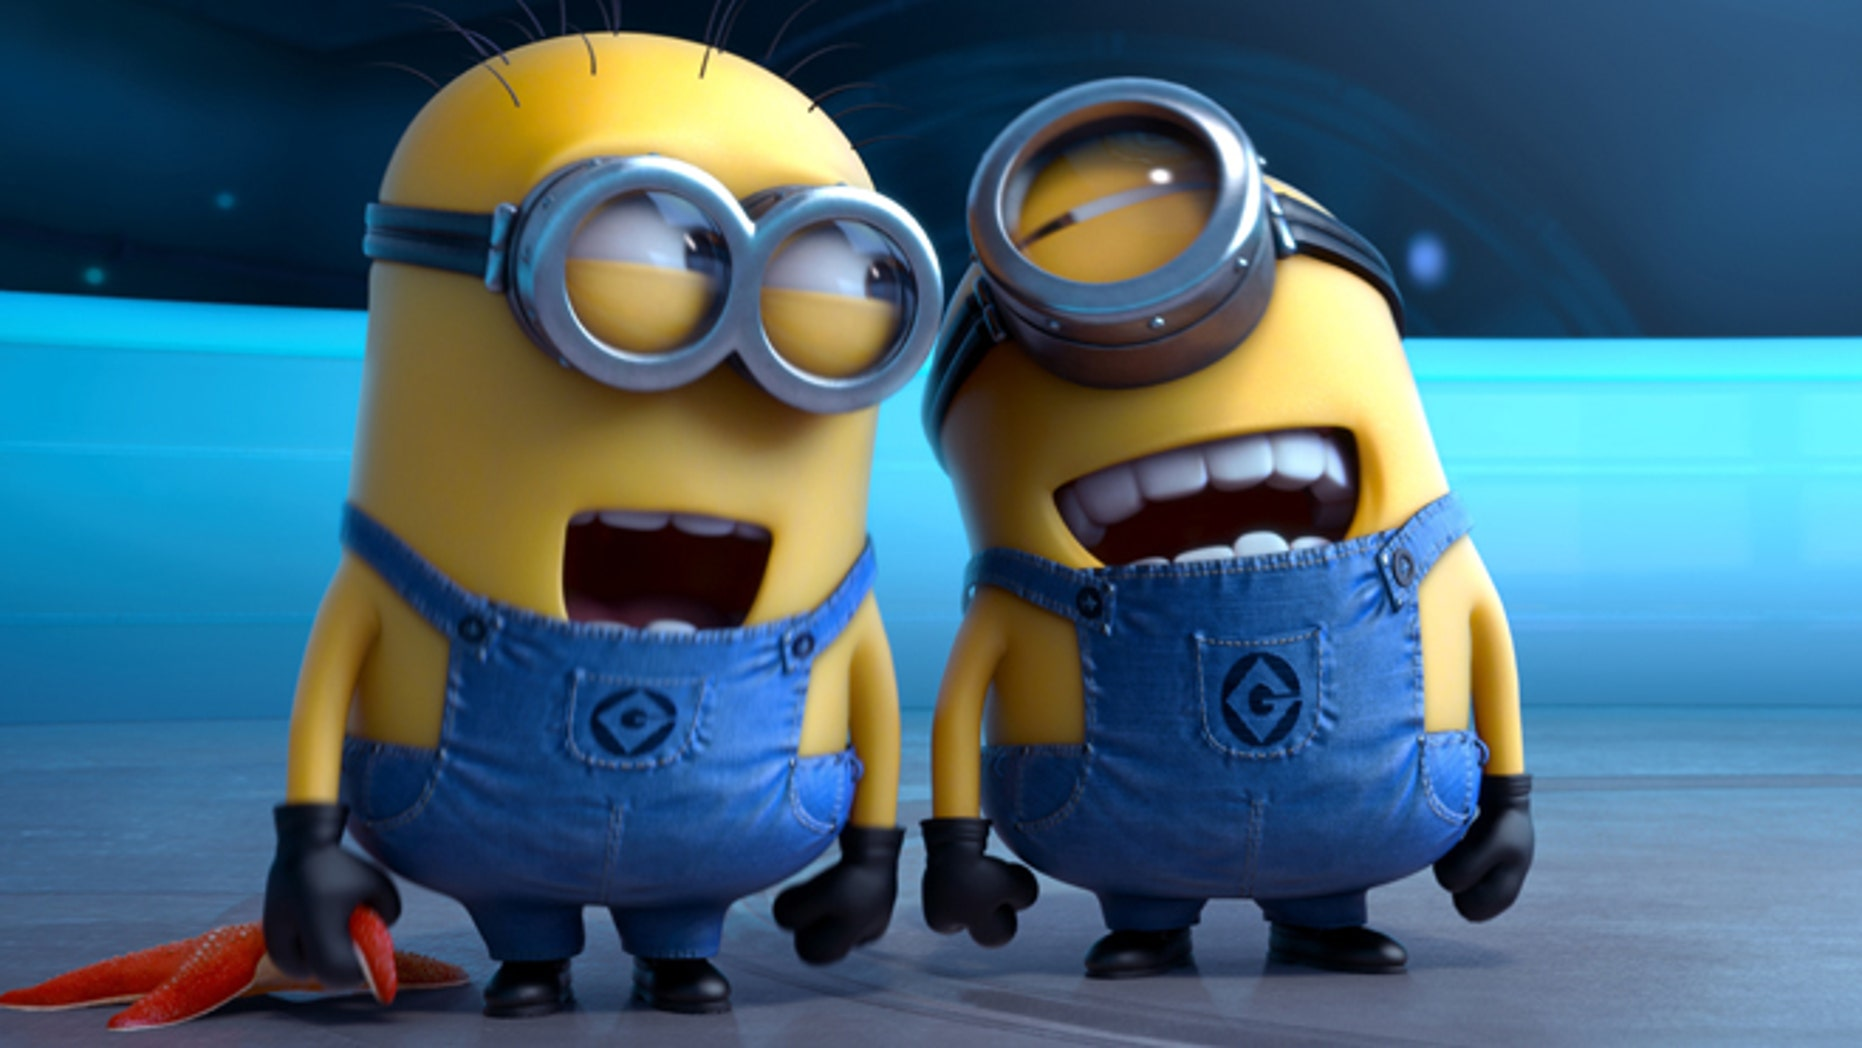 """FILE - This file photo provided by Universal Pictures shows the minion characters in the film """"Despicable Me 2.""""  Domestic box office numbers so far on this long Fourth of July holiday weekend are suggesting the the animated minions of family favorite, with a price tag one third of what The Lone Ranger cost to make, is outperforming the masked man by more than three to one. (AP Photo/Universal Pictures, File)"""